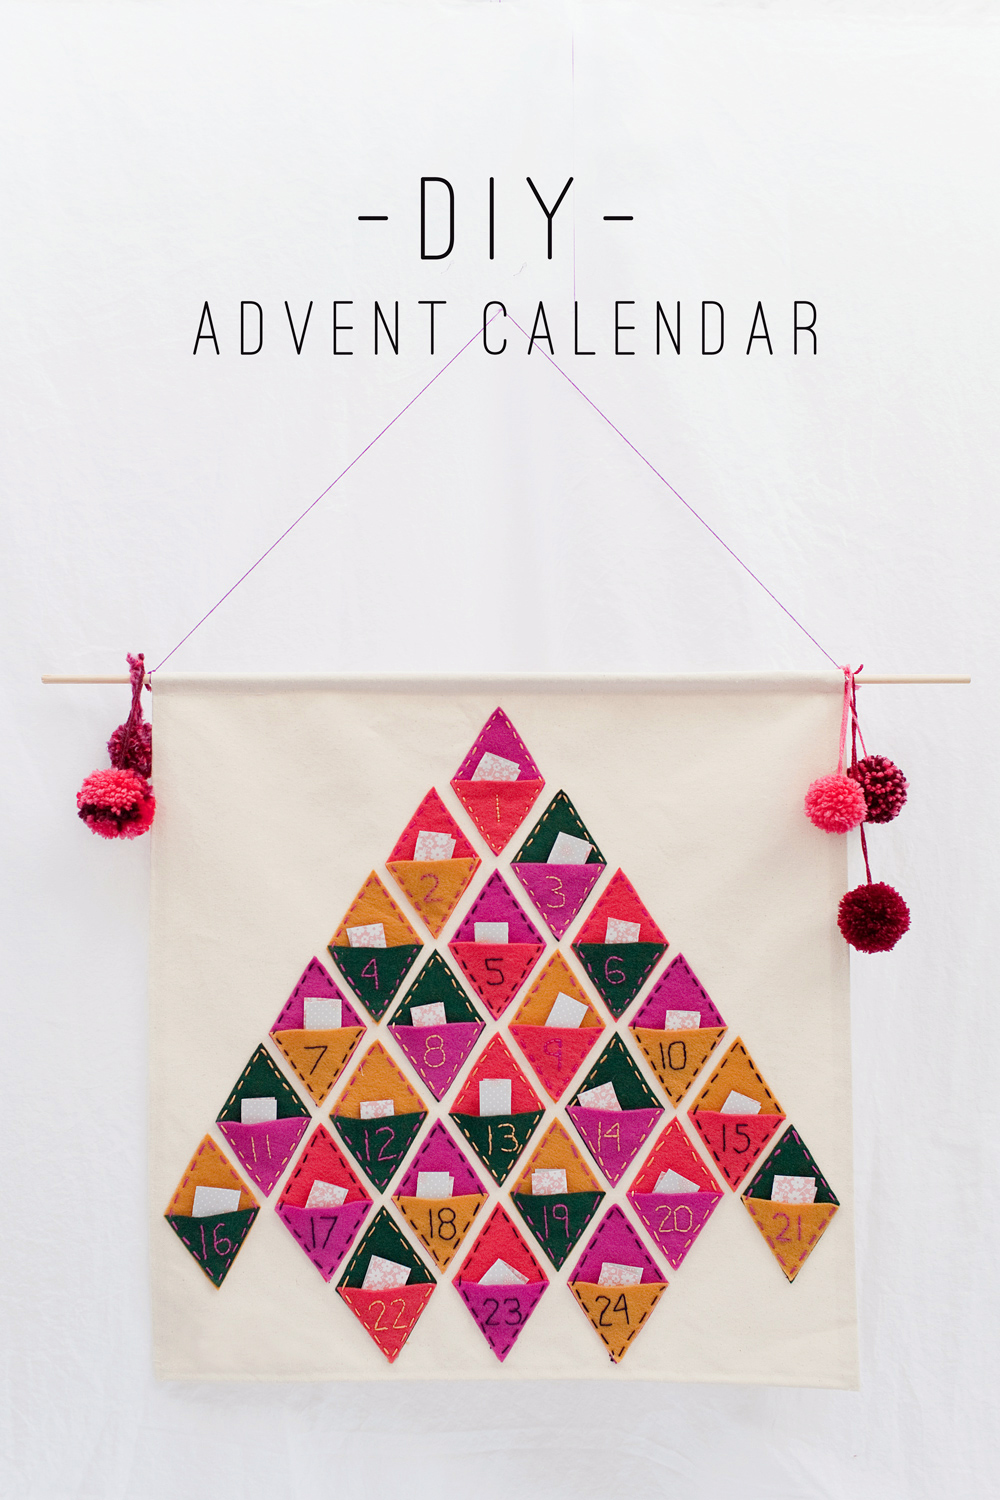 Calendar Advent Diy : Tell diy advent calendar love and party